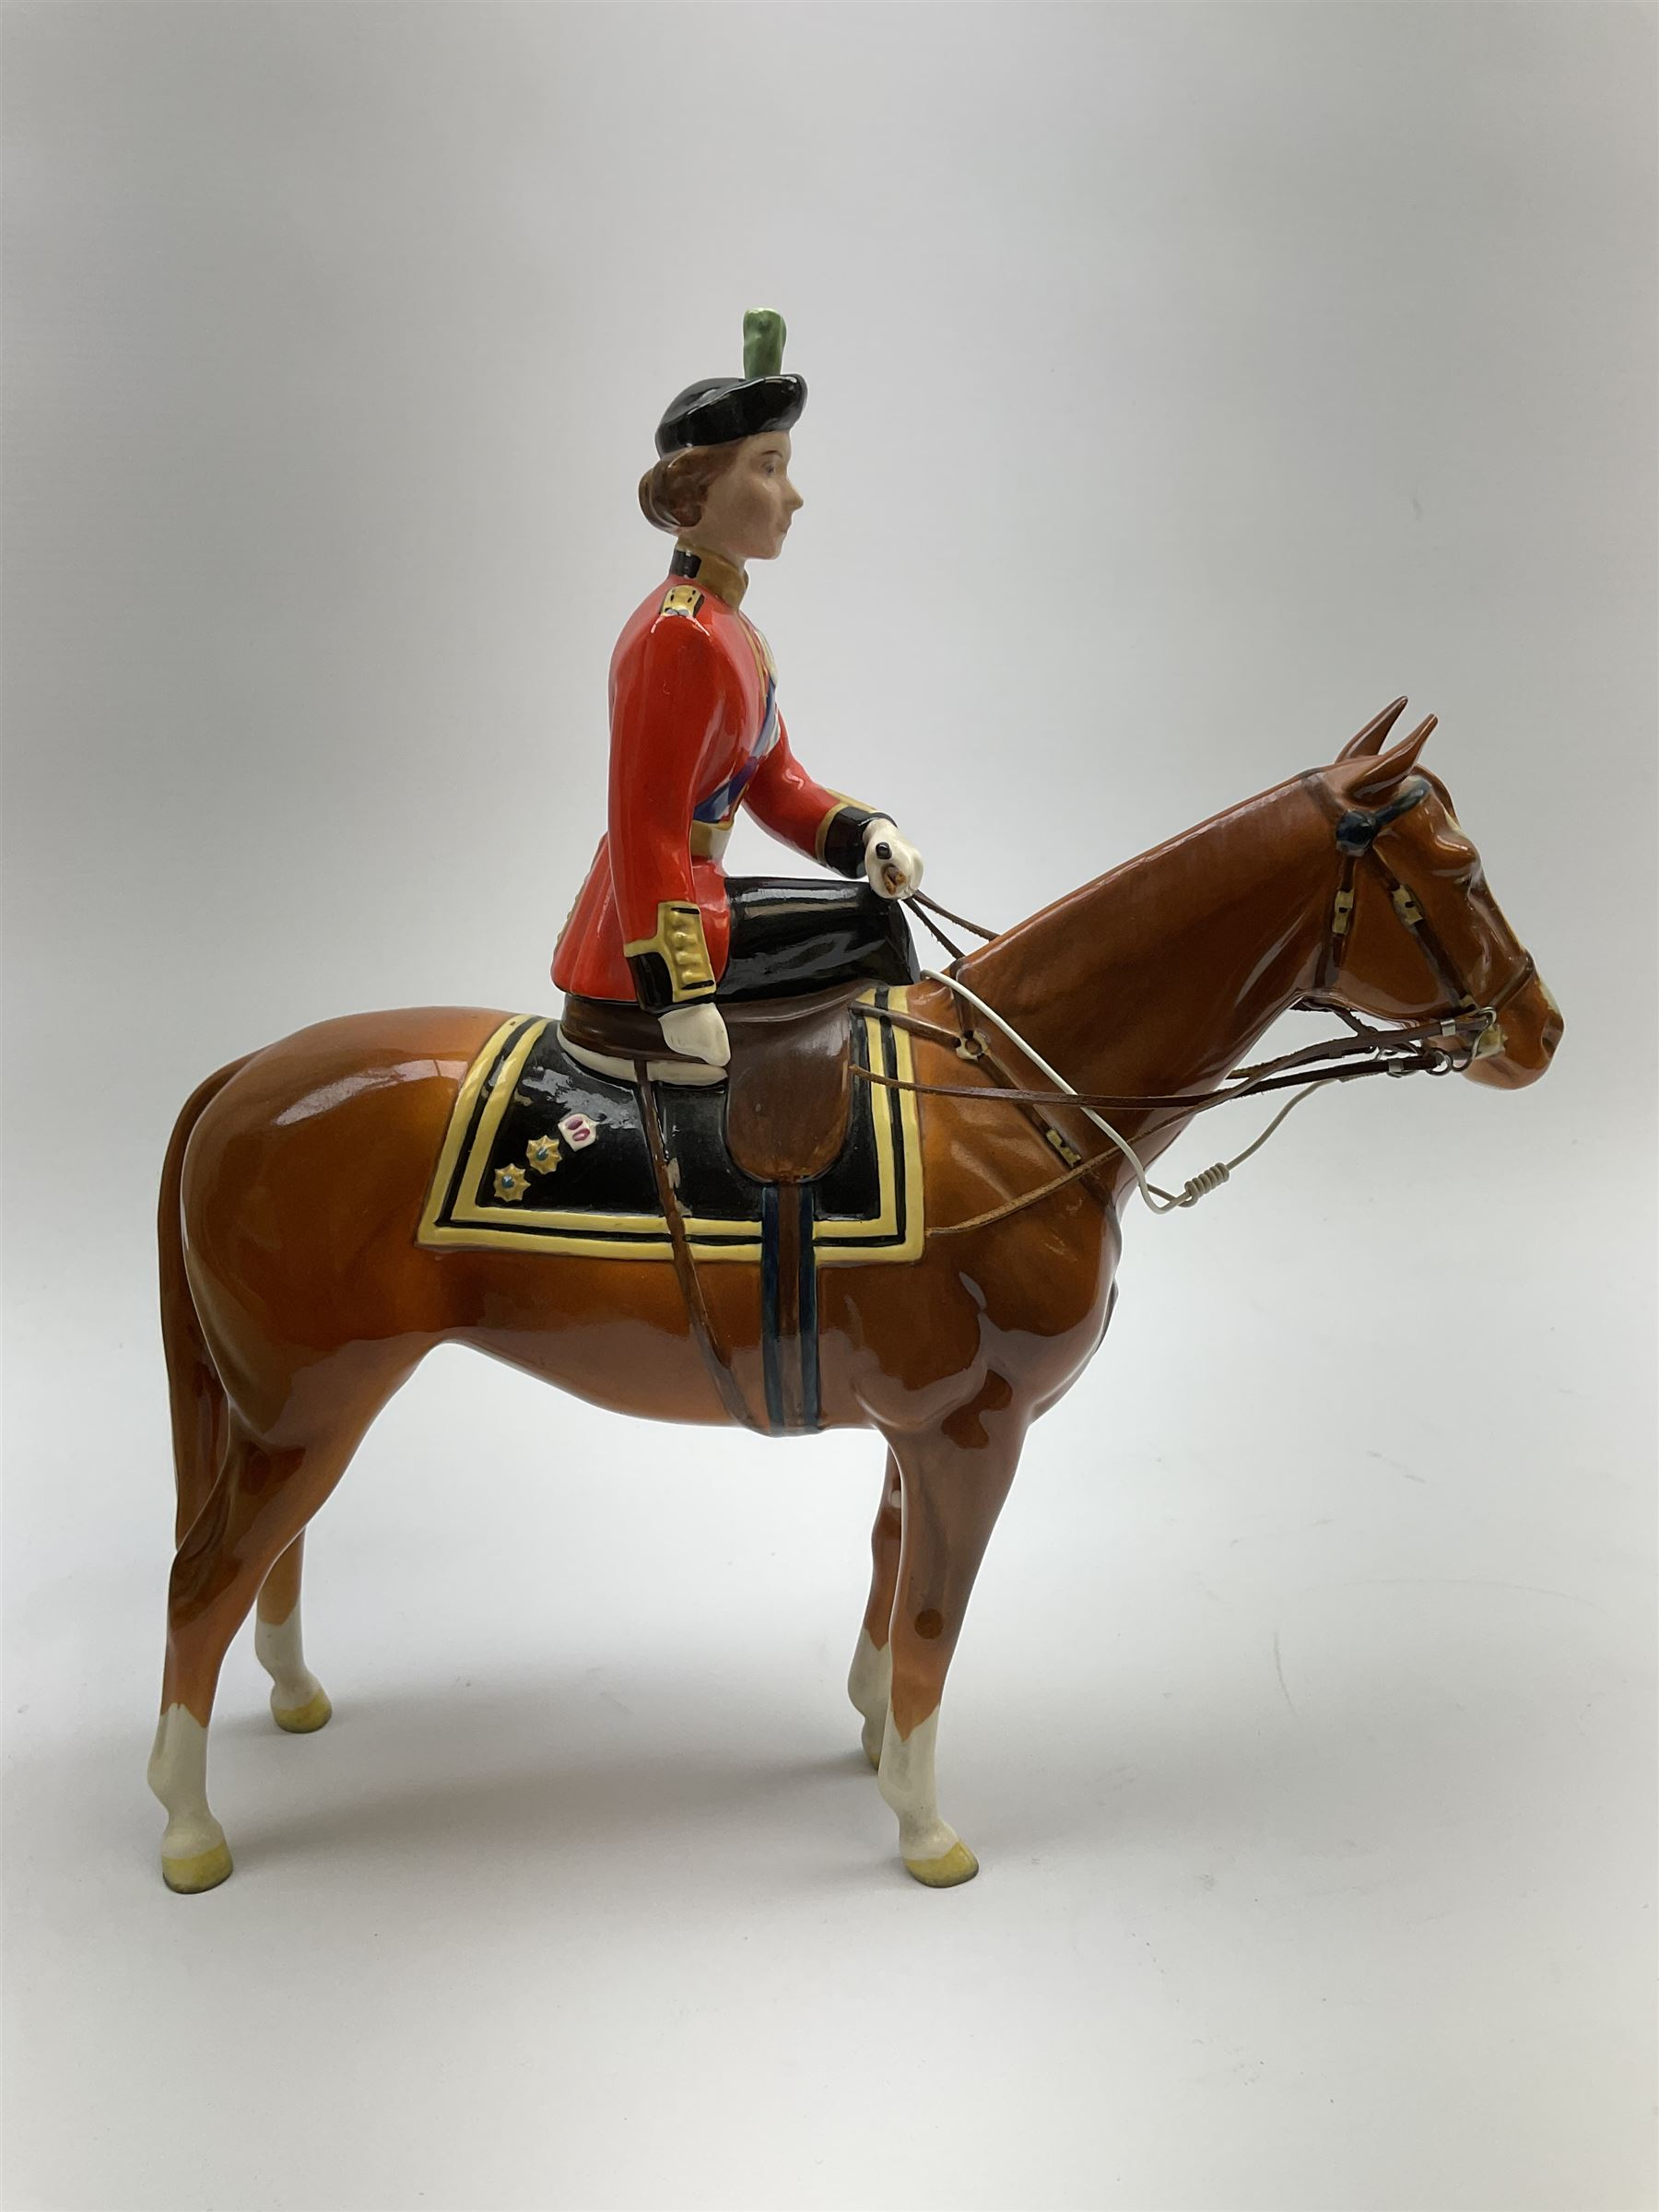 A Beswick model of HM Queen Elizabeth II mounted on Imperial Trooping the colour 1957 - Image 6 of 12